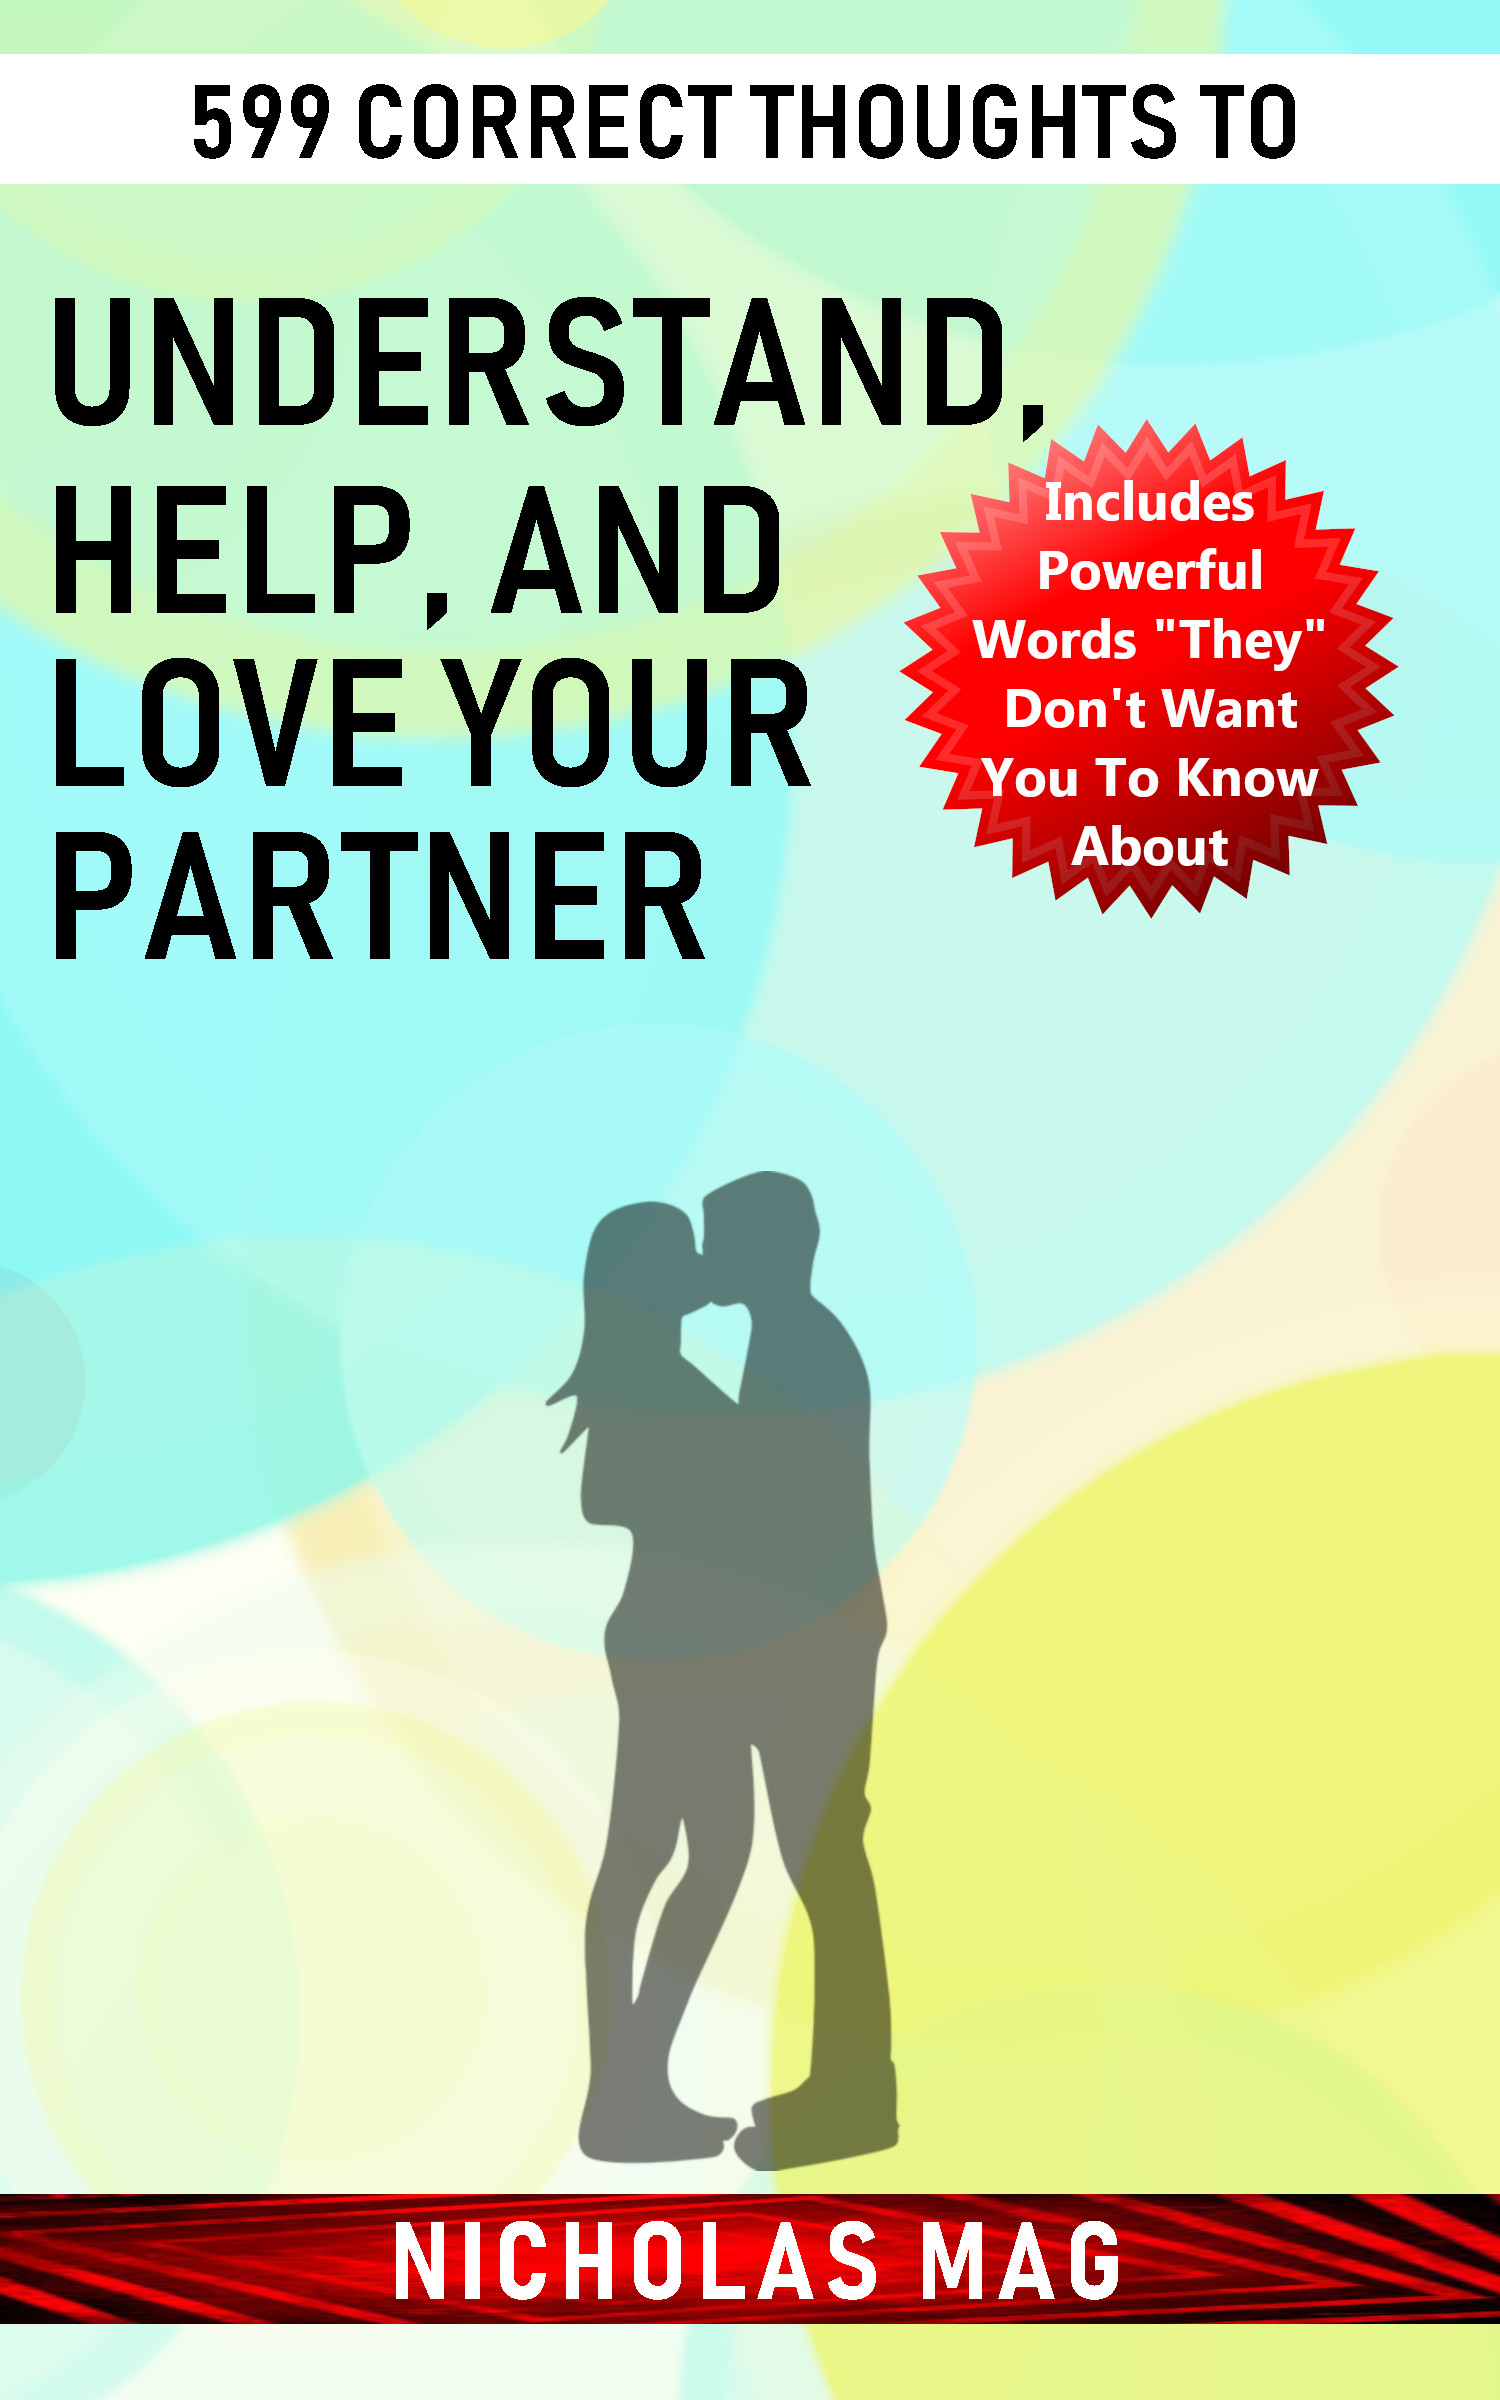 Love Those Self Service Reserved Book >> Smashwords 599 Correct Thoughts To Understand Help And Love Your